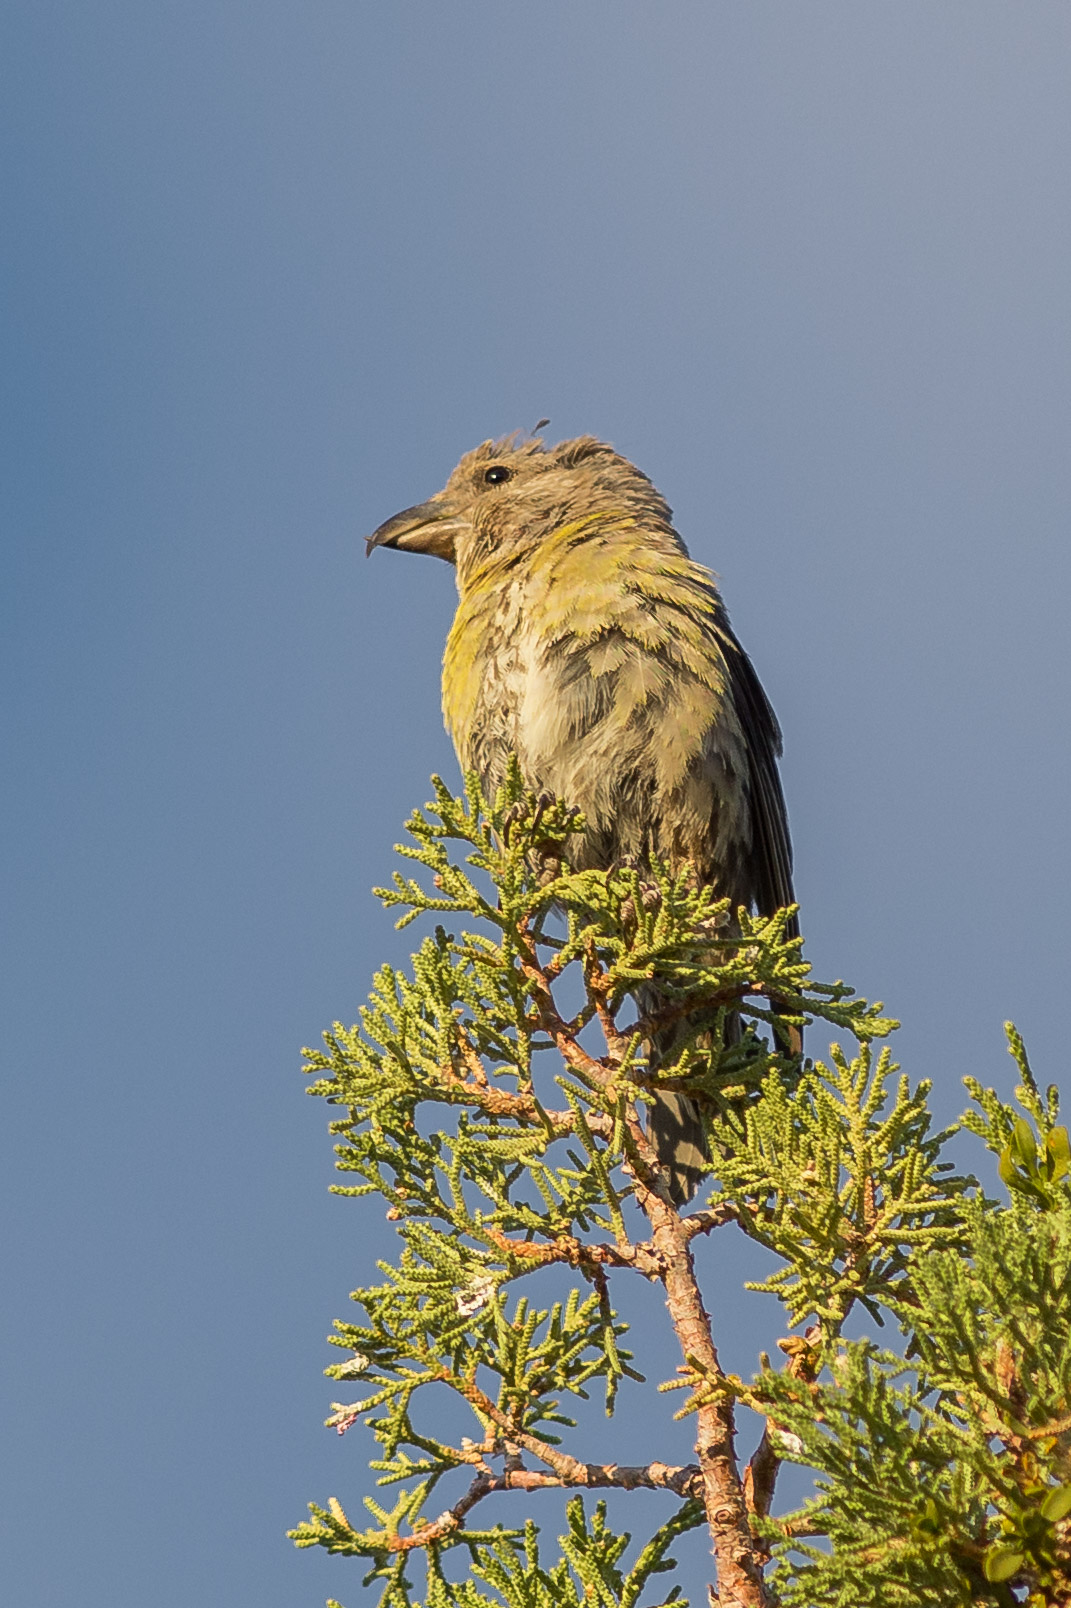 Red Crossbill, female (Loxia curvirostra)- Lava Beds NM, Siskiyou Co. (CA)  EQ: D7200, 300mm f/2.8  Taken: 10-2-2016 at 7:43   Settings: 450 mm (35mm eqiv), 1/1000s, f/3.5, ISO220, +1/3EV  Conditions: Sunny